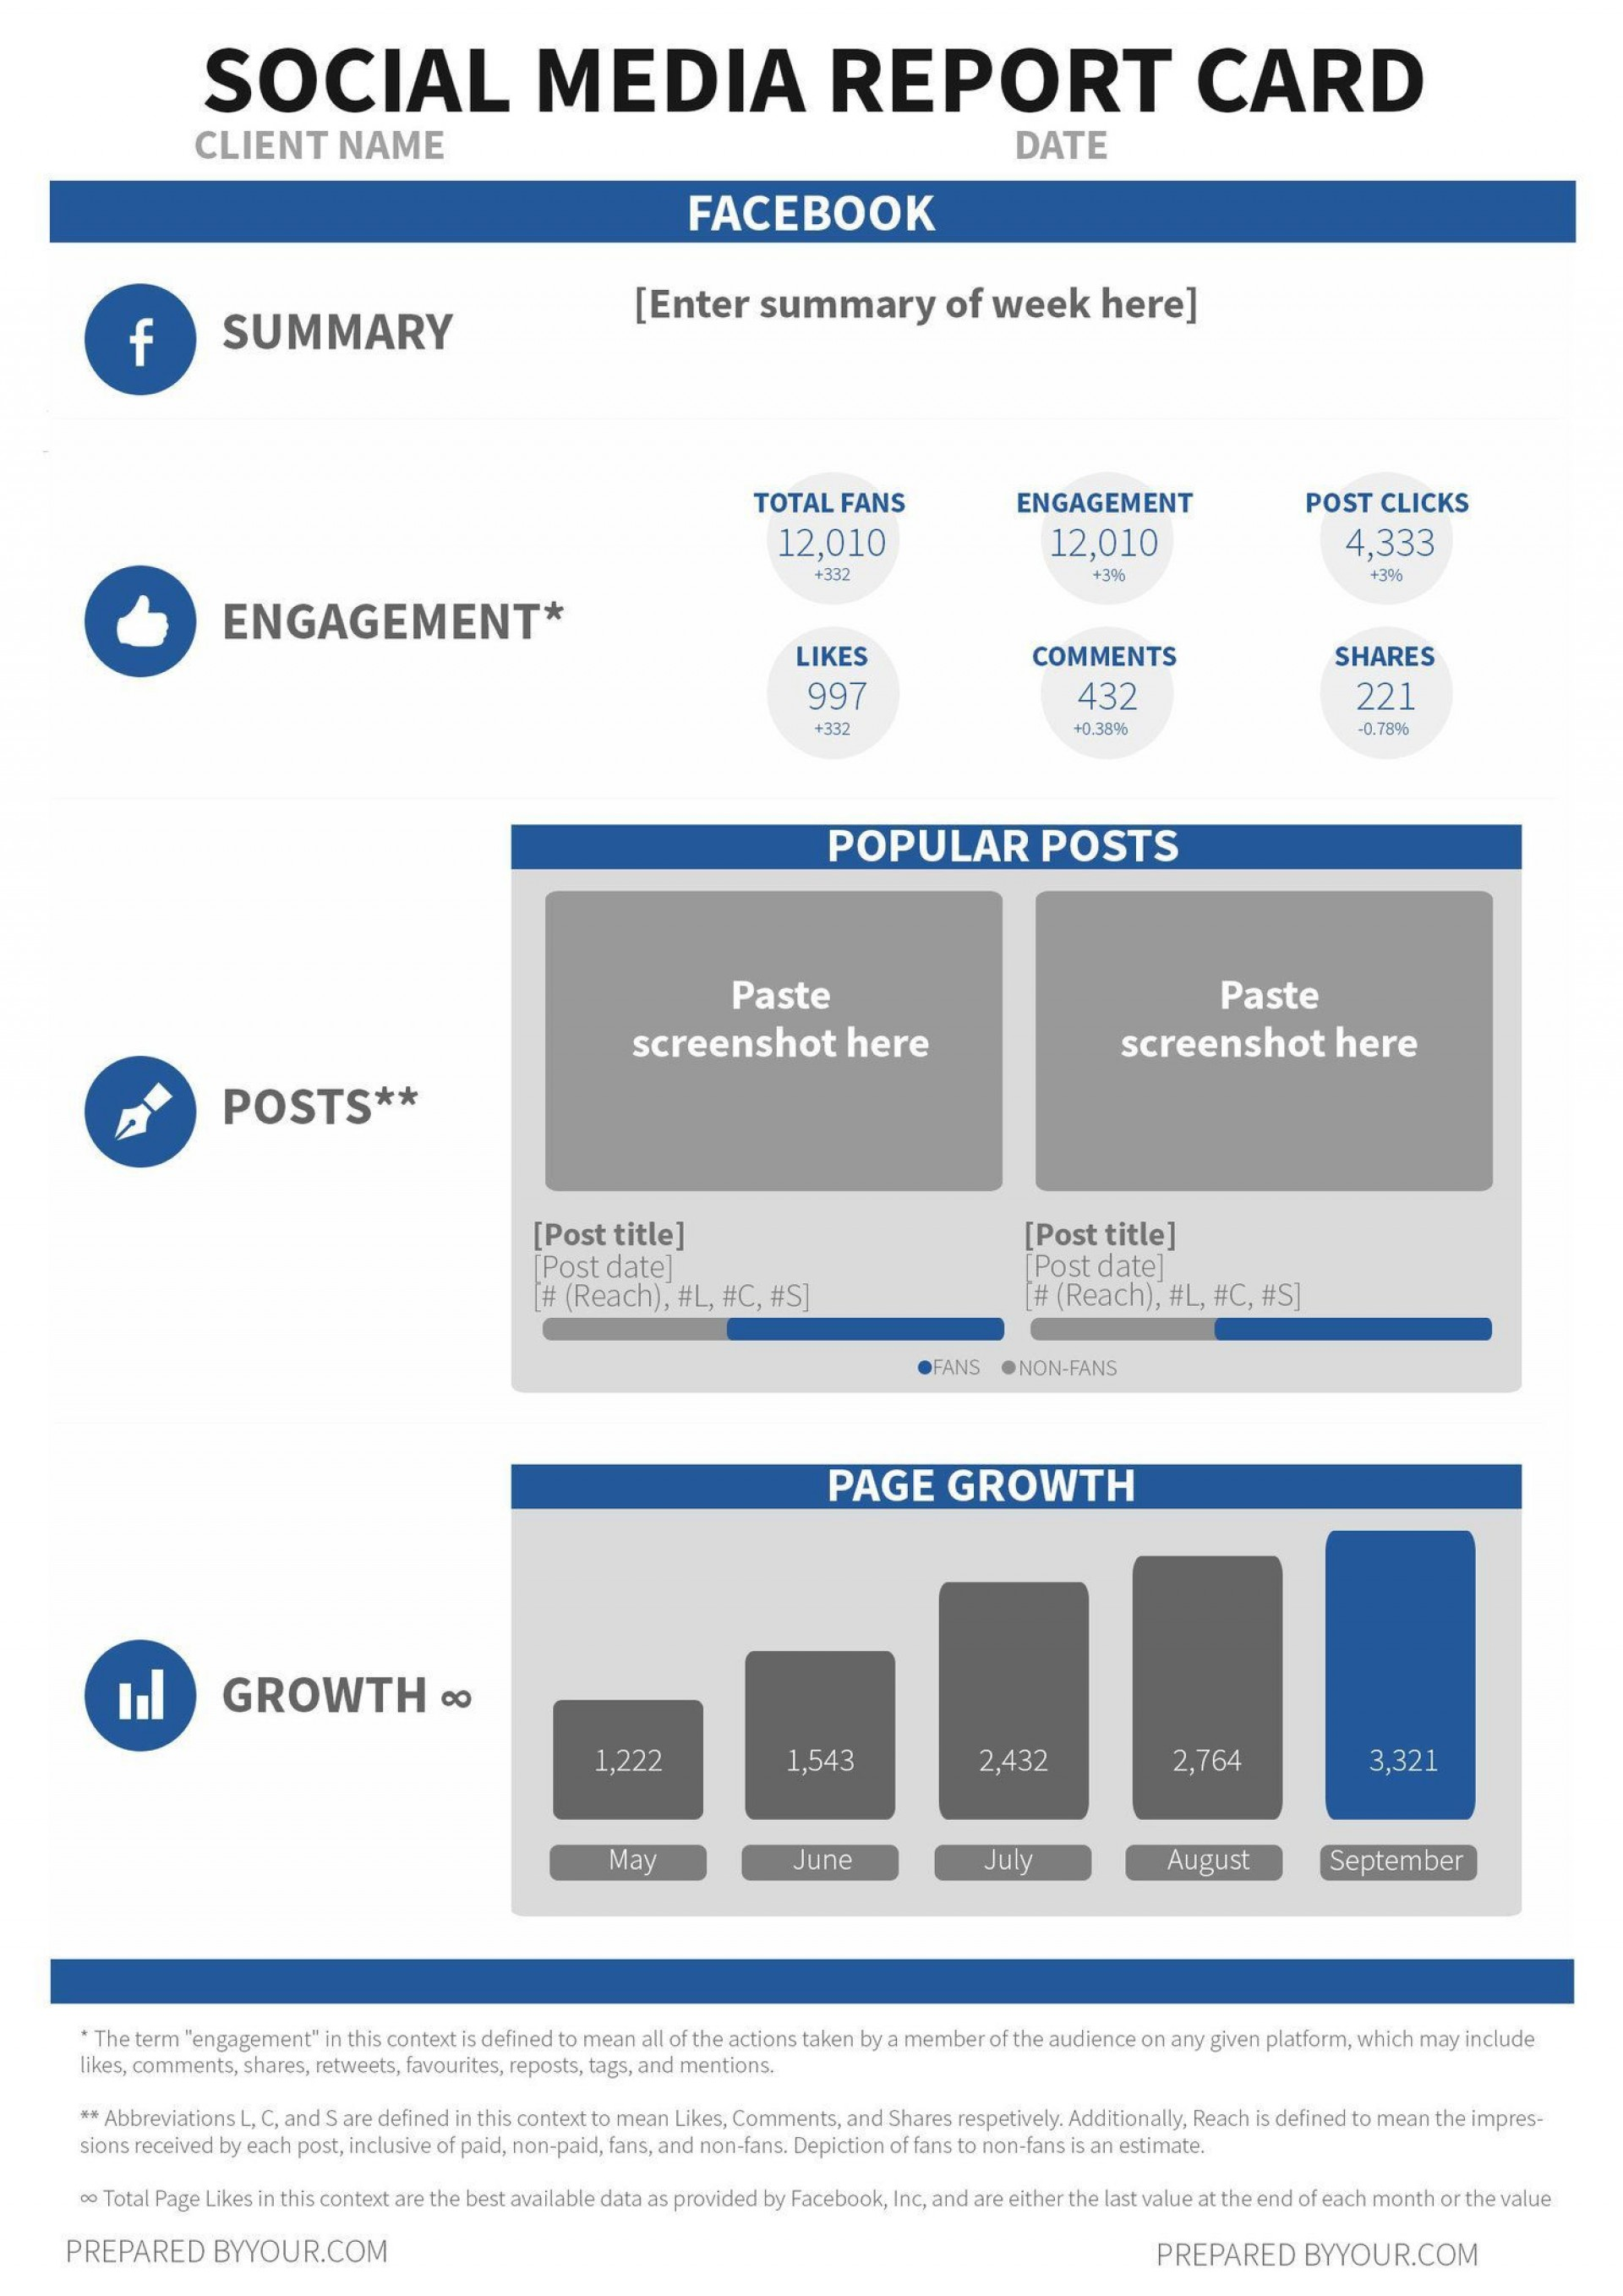 001 Fearsome Social Media Report Template Photo  Templates Powerpoint Monthly Free1920